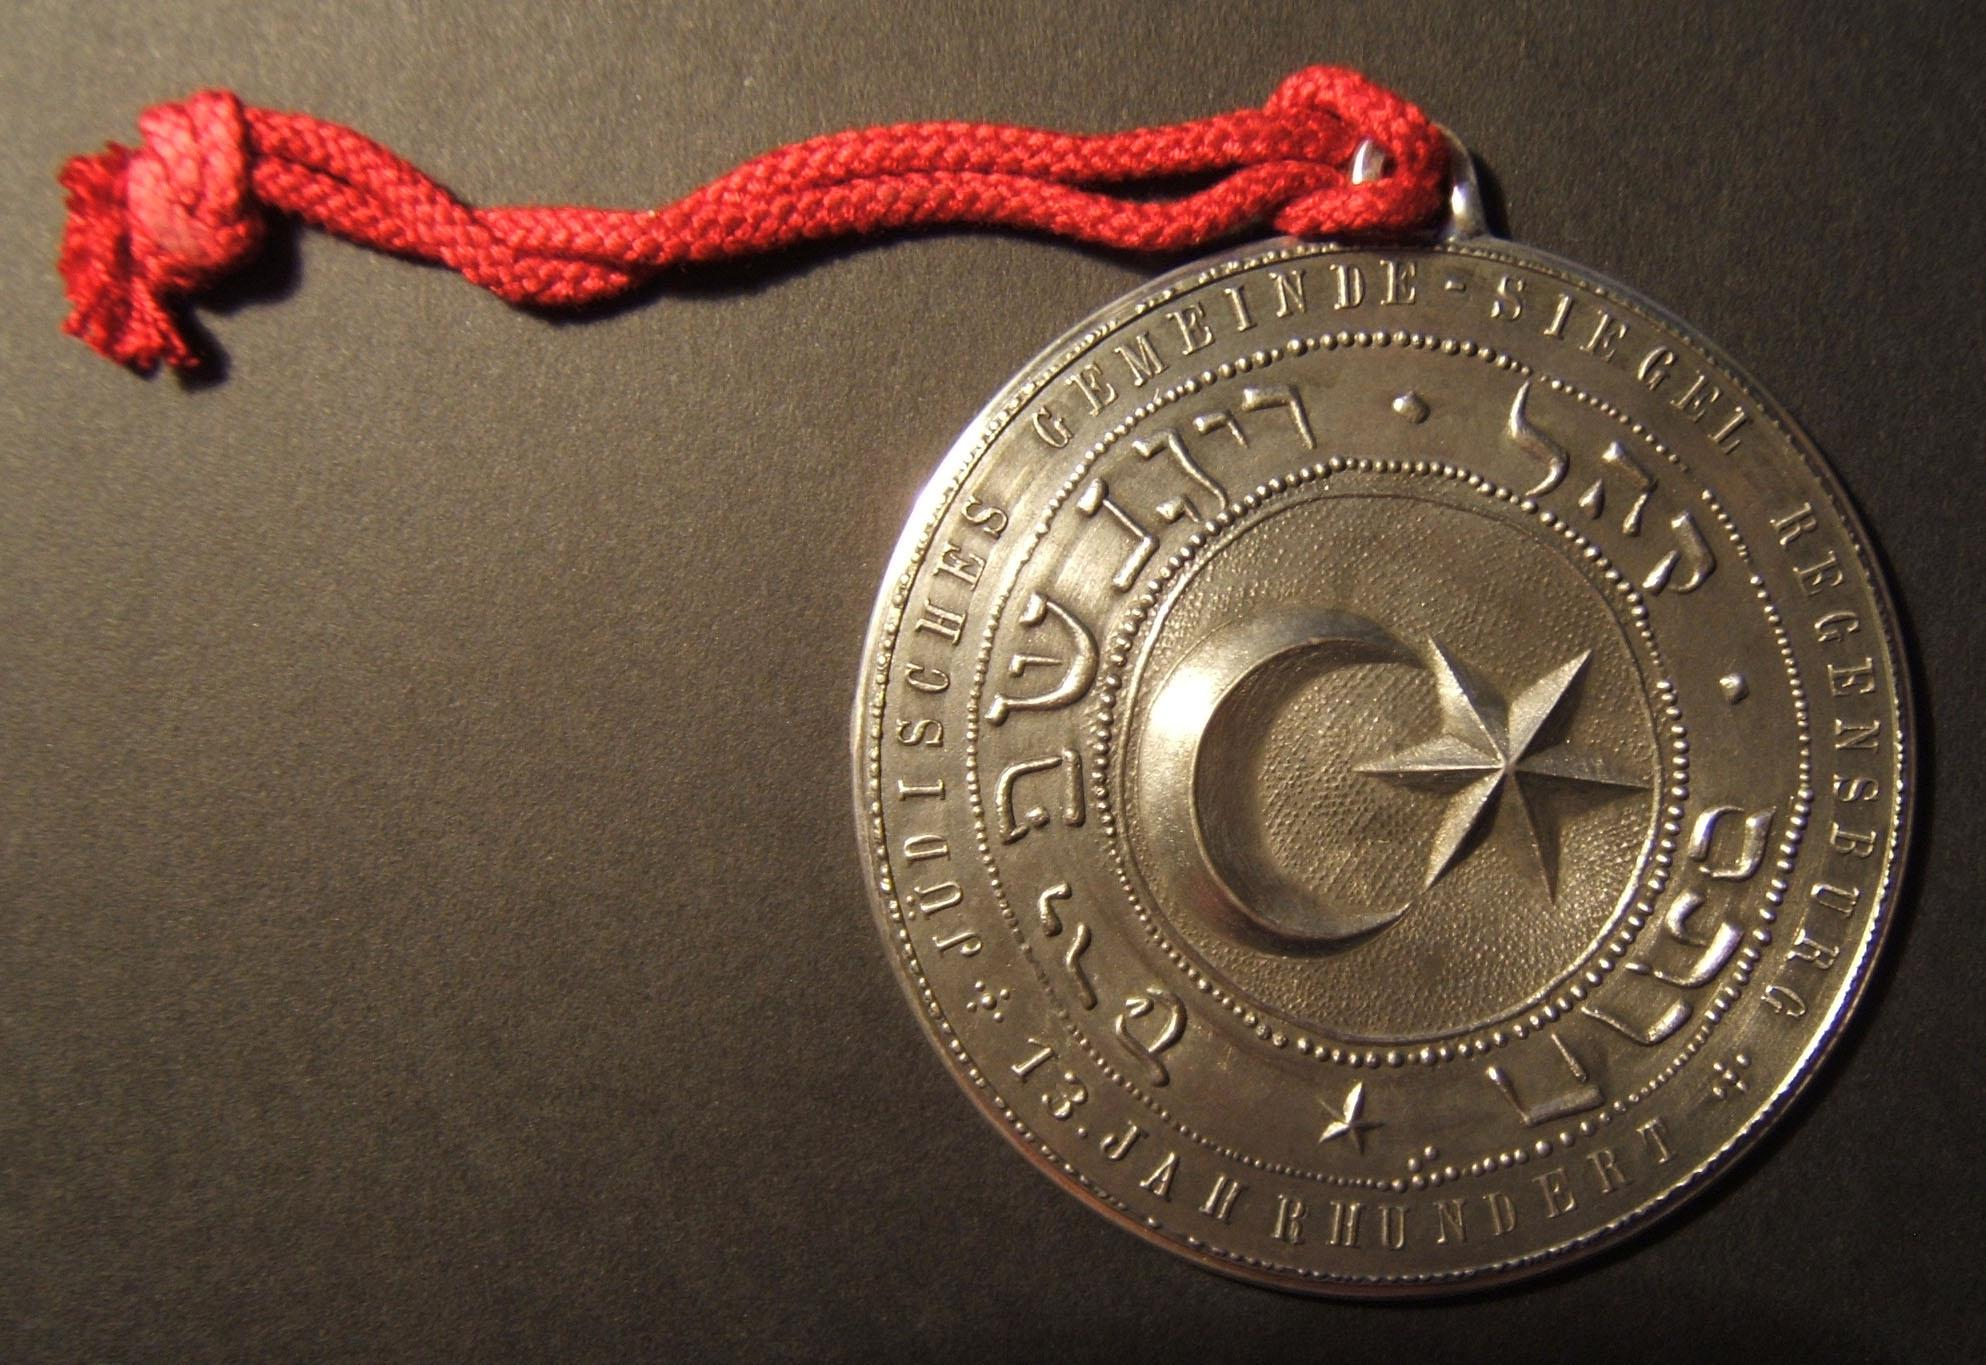 Germany: seal of Regensburg Jewish community commemoration medal, c. 1956-1969